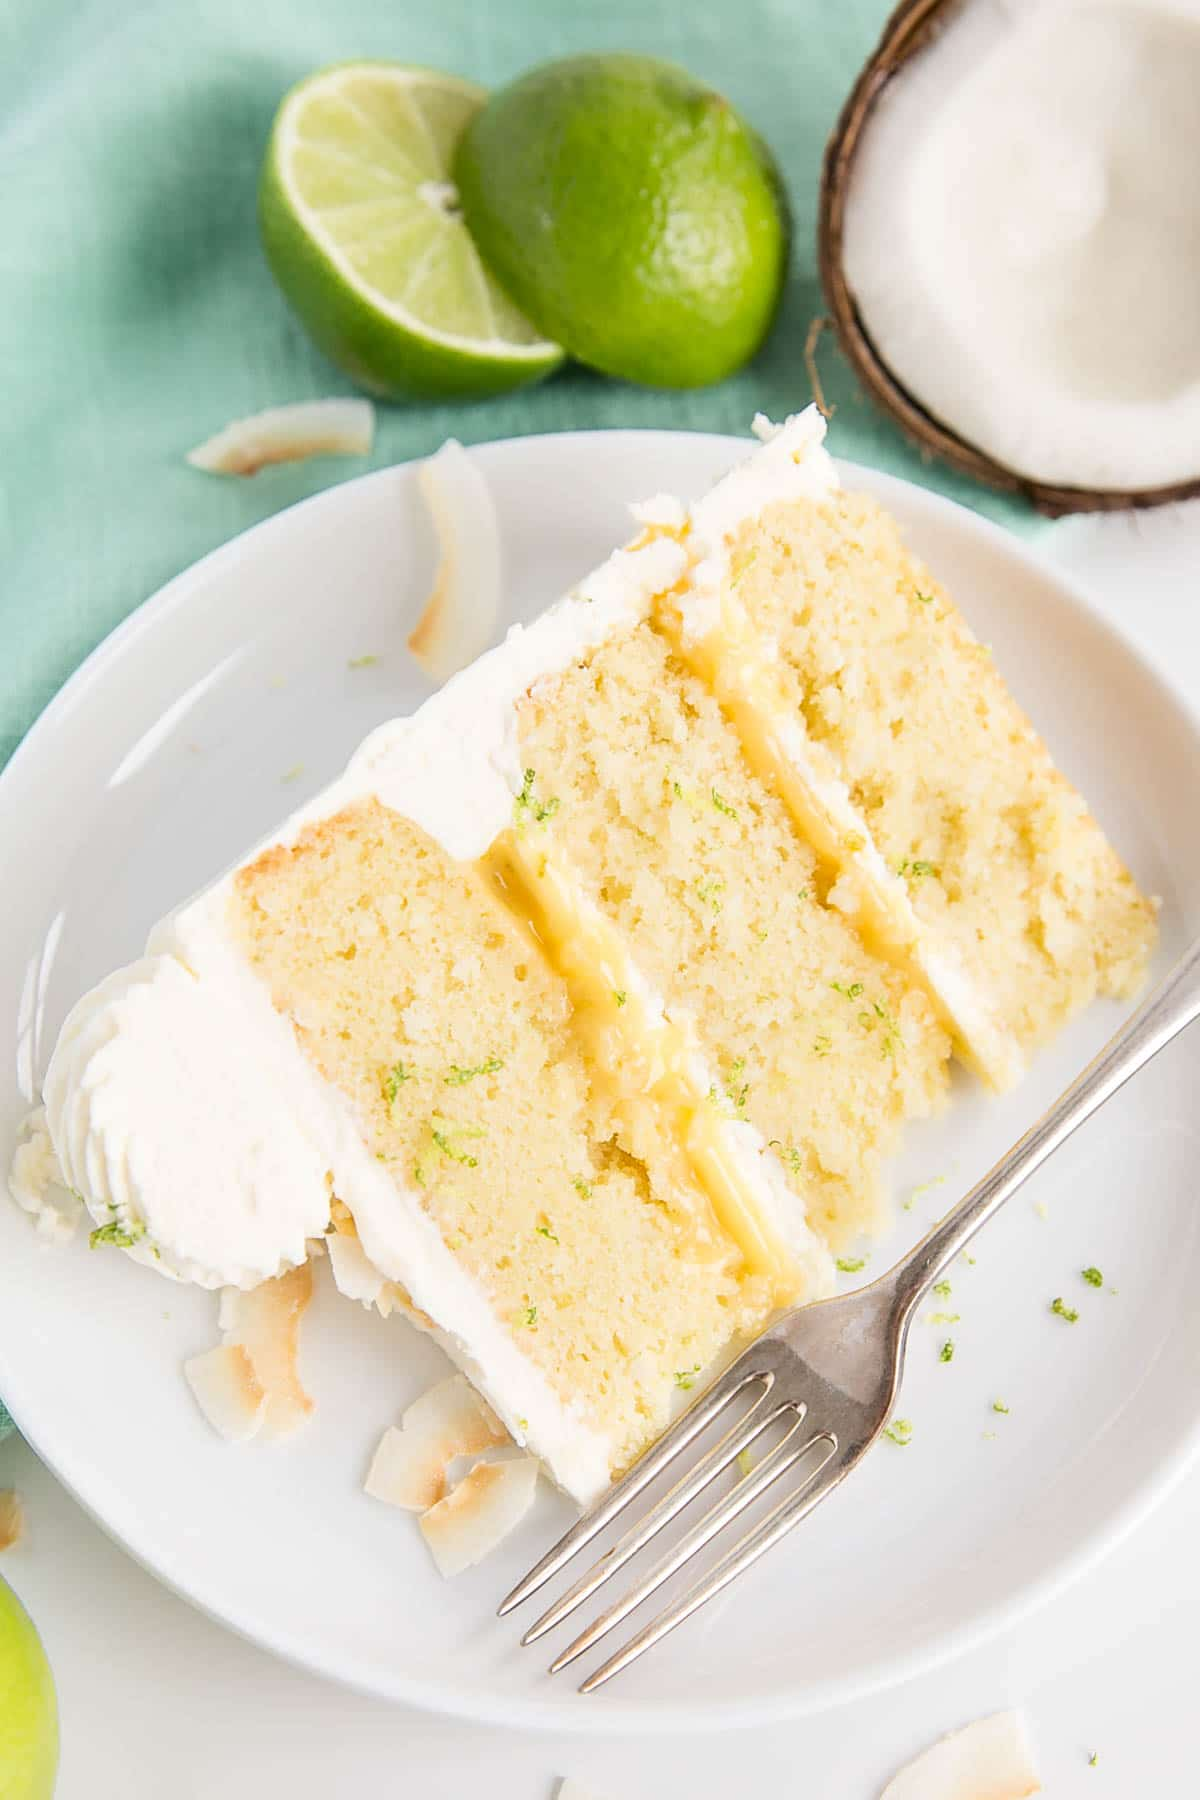 Slice of Lime & Coconut Cake